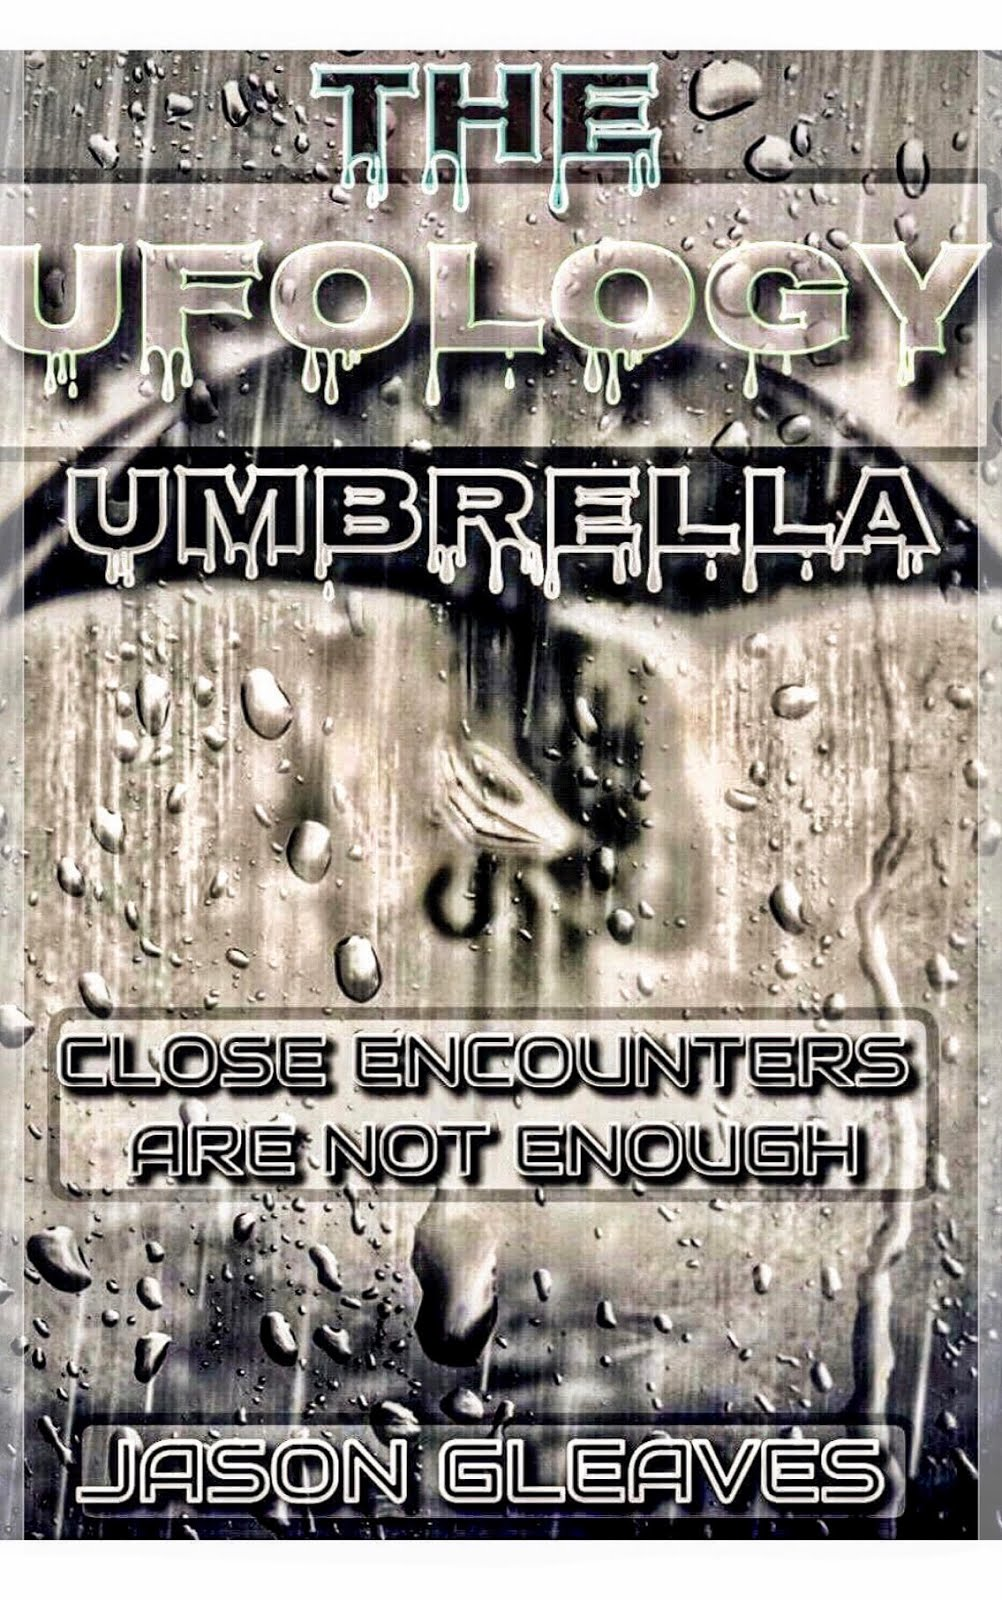 THE UFOLOGY UMBRELLA BY JASON GLAVES